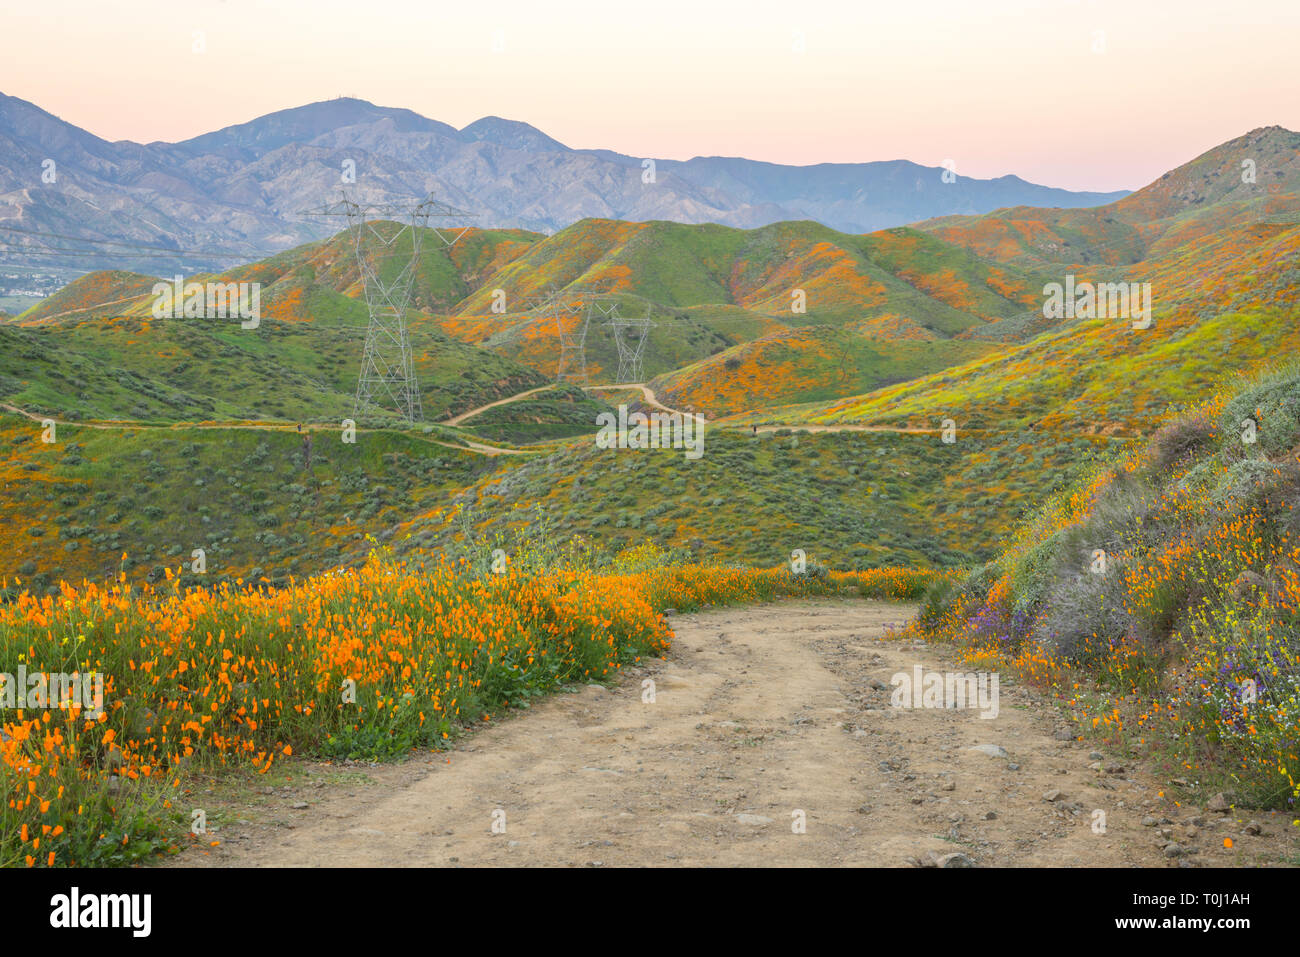 Wildflower superbloom in Walker Canyon in the month of March. View of the Walker Canyon Trail.  Lake Elsinore, California, USA. - Stock Image